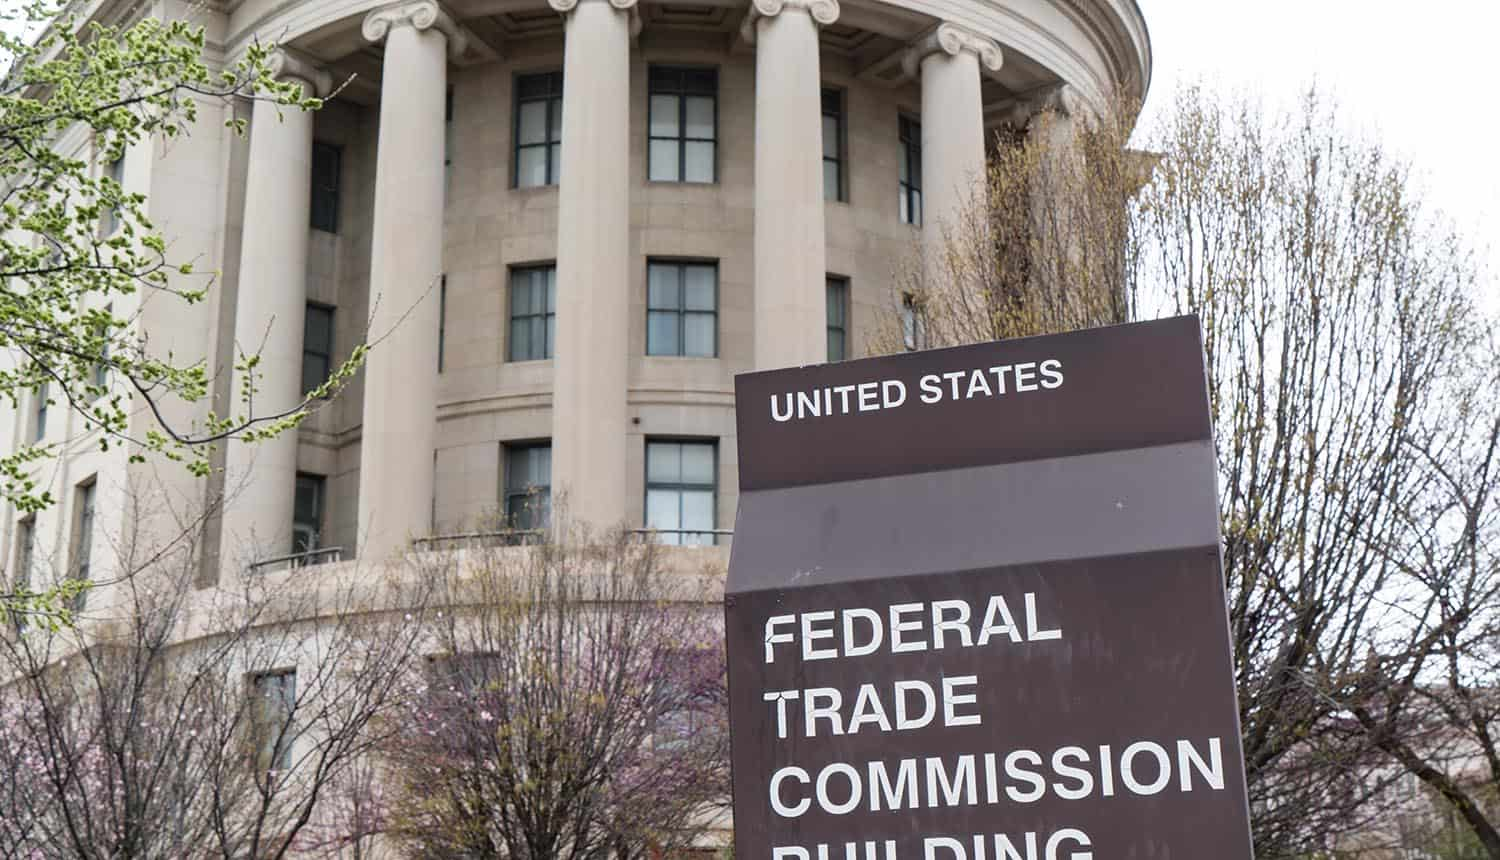 United States Federal Trade Commission (FTC) building in Washington, DC